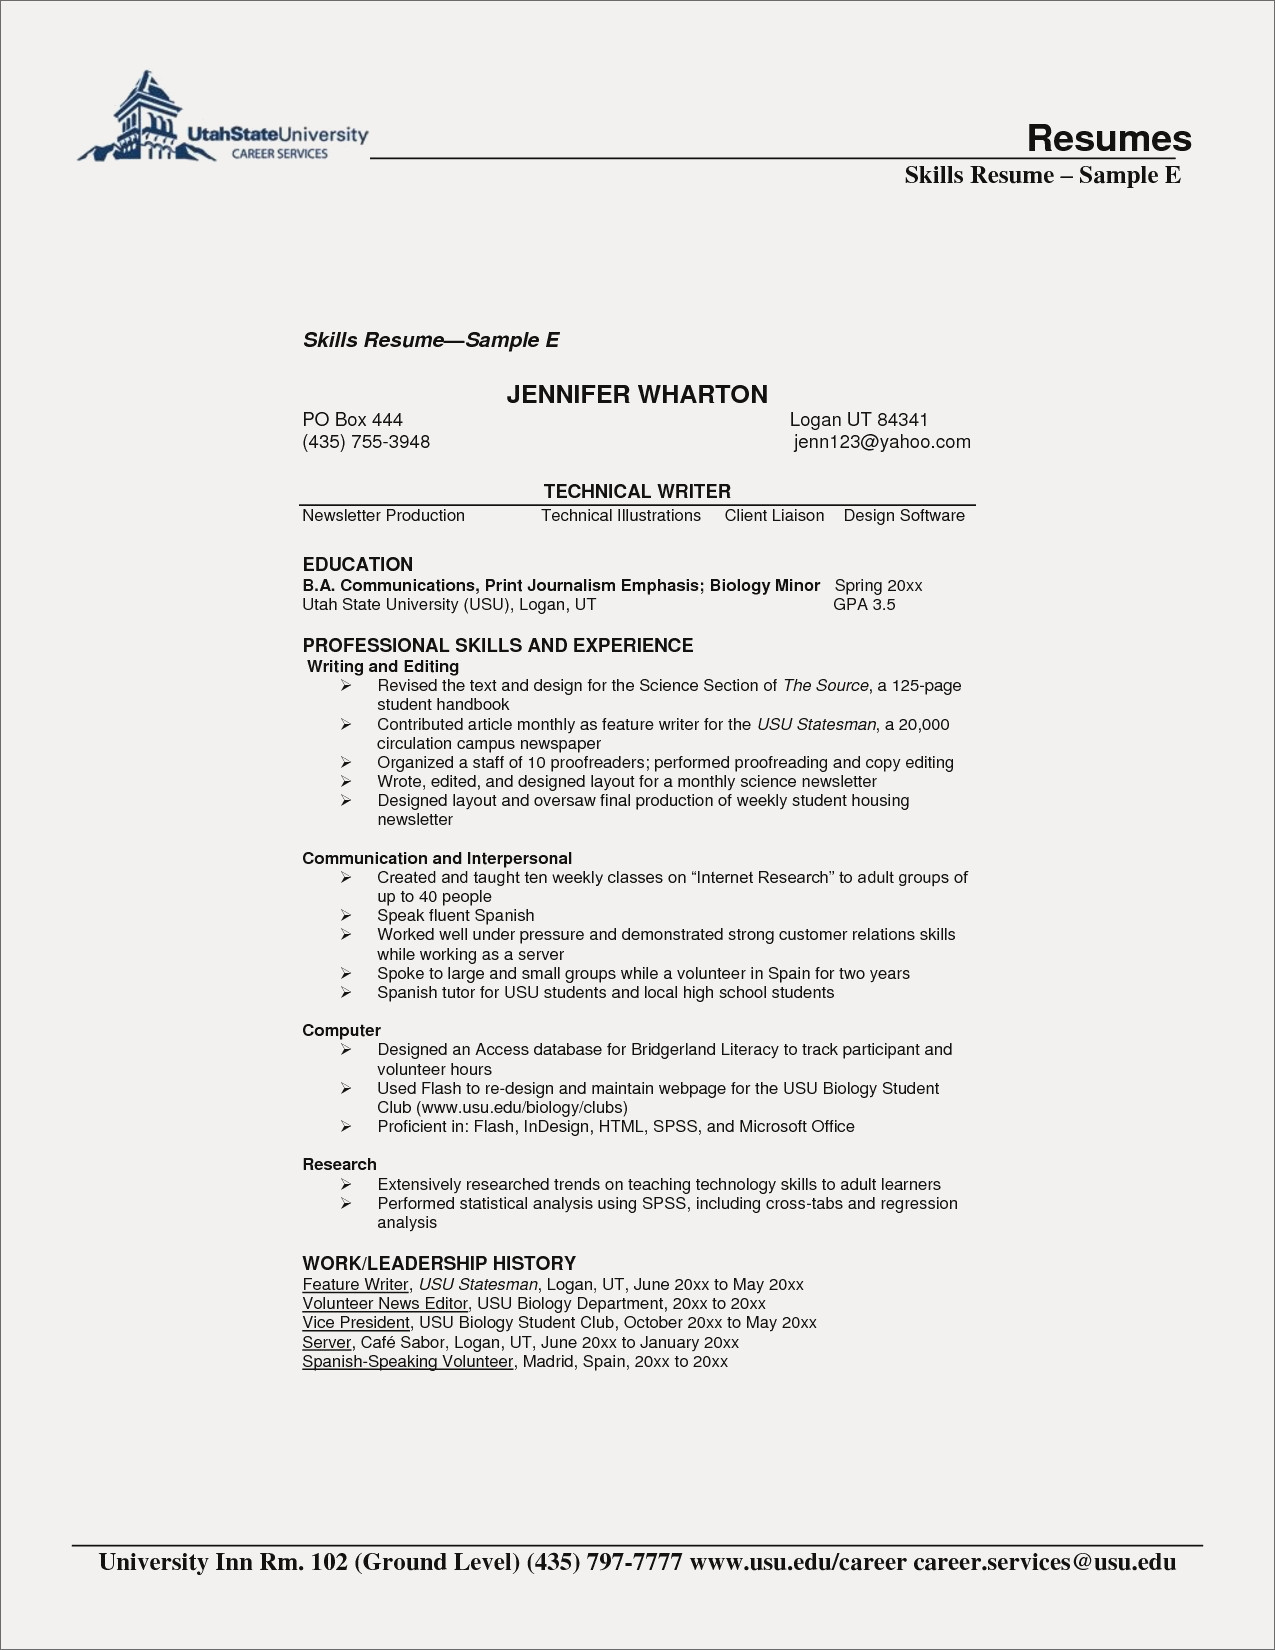 Skills for Resume for High School Student - Cheap Resumes Fresh Puter Skills Example Unique Examples Resumes